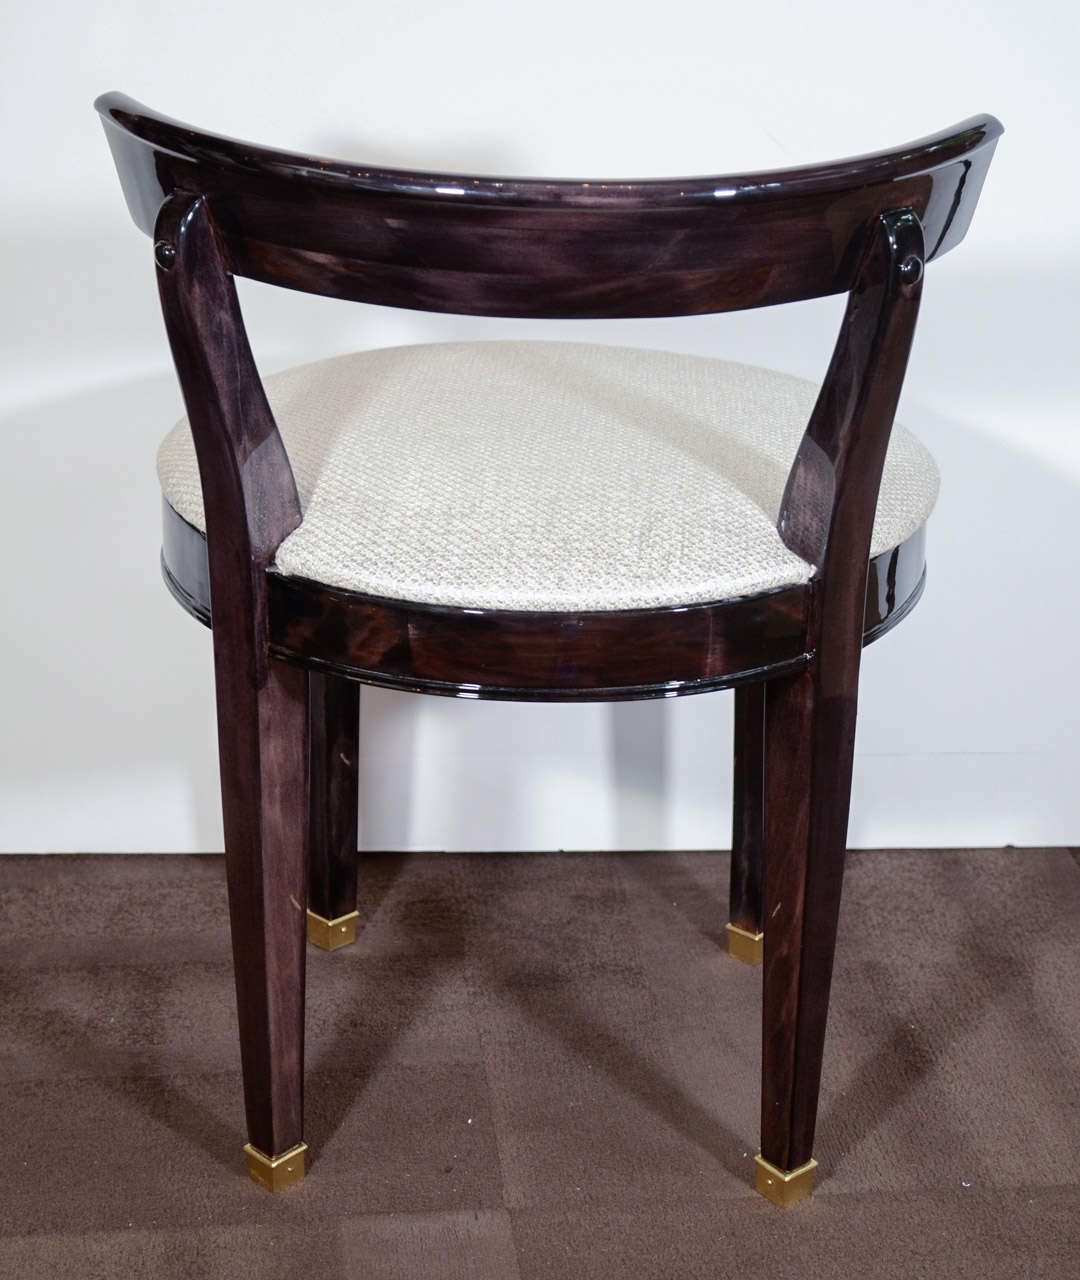 Vanity Seat With Back Art Deco Vanity Chair With Low Back Design In Ebonized